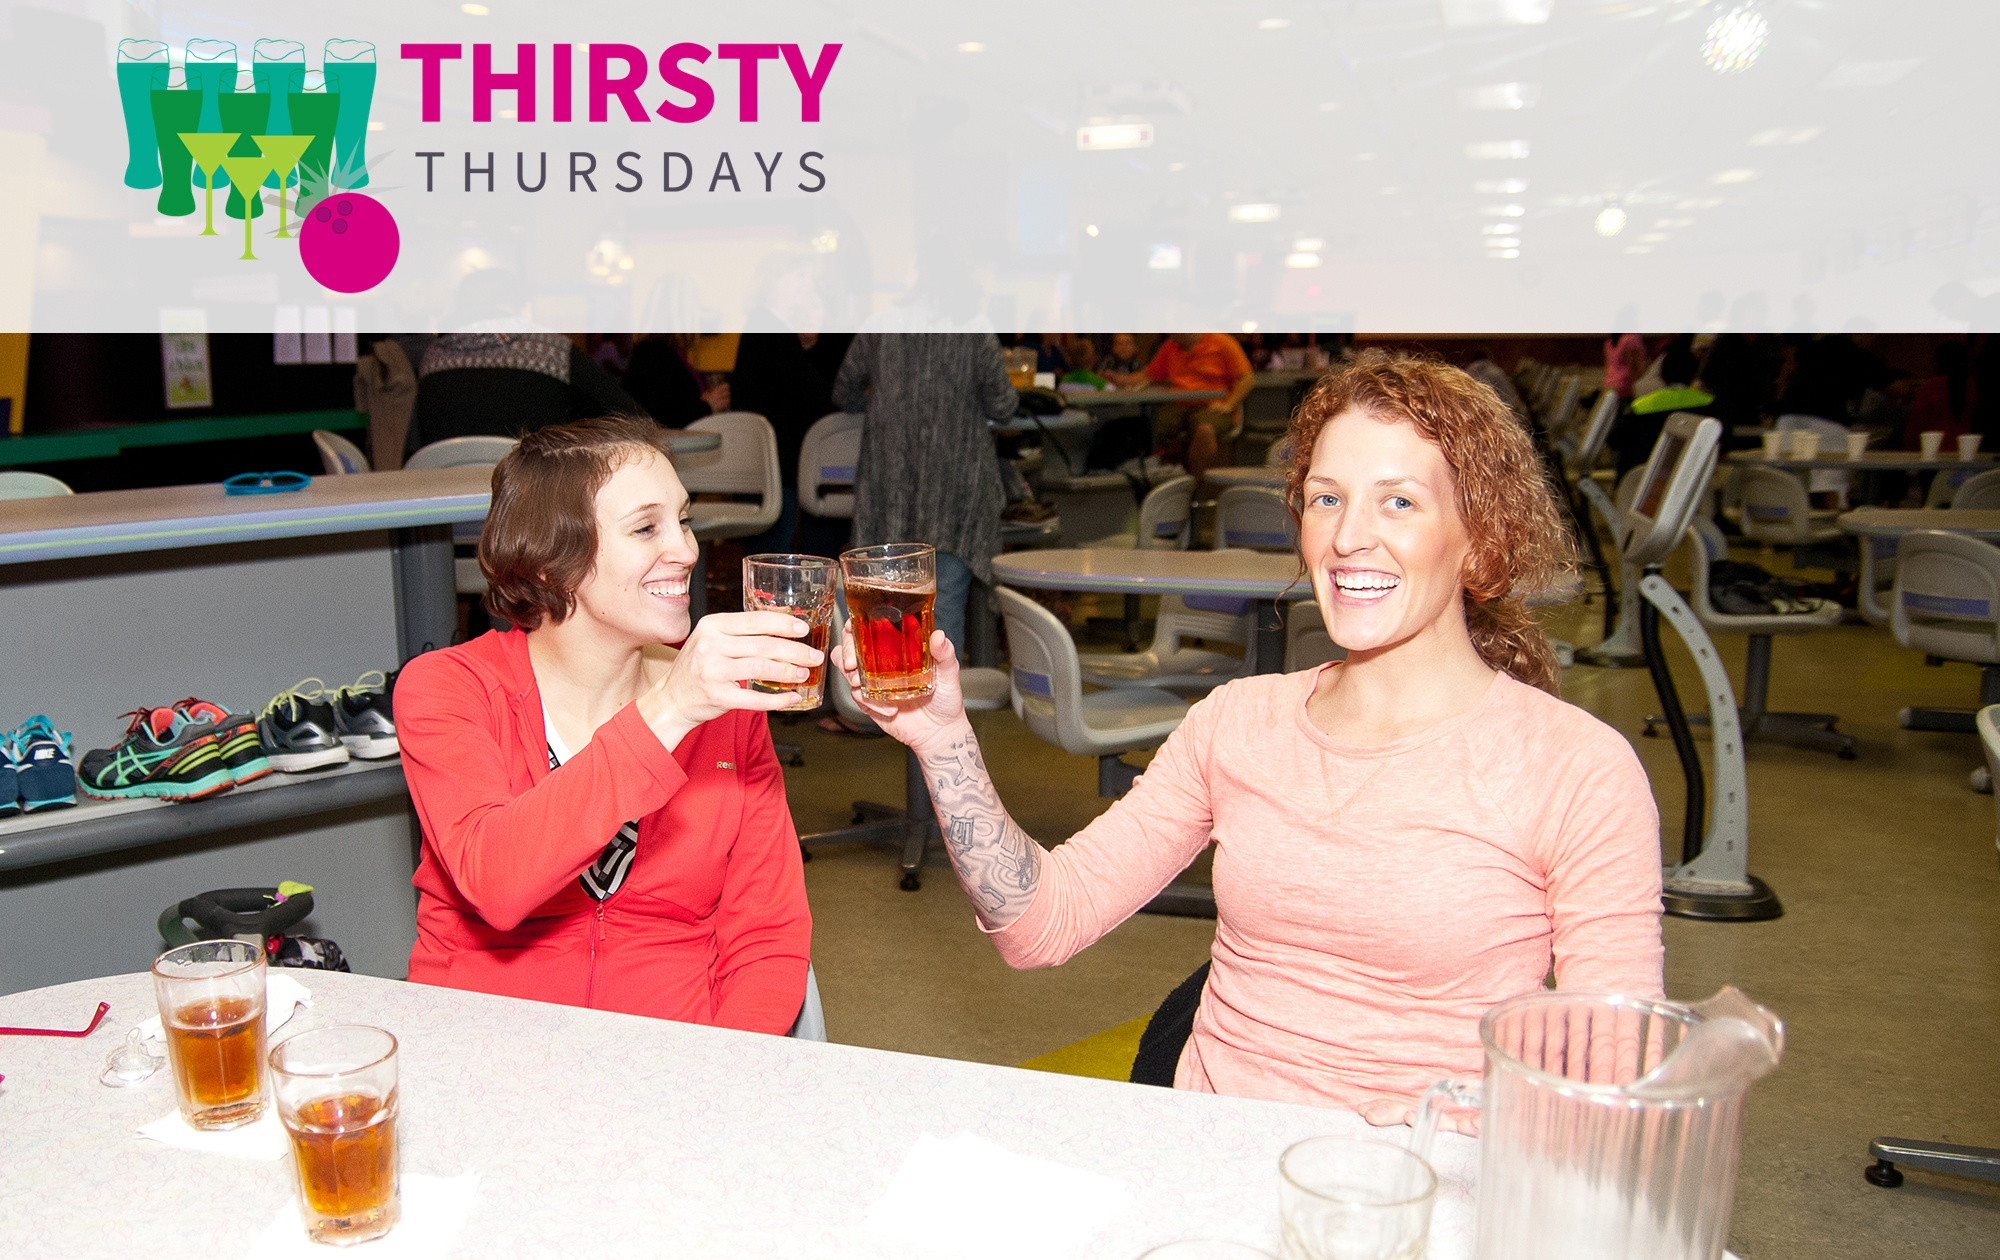 Thirsty Thursdays at Pin Chasers